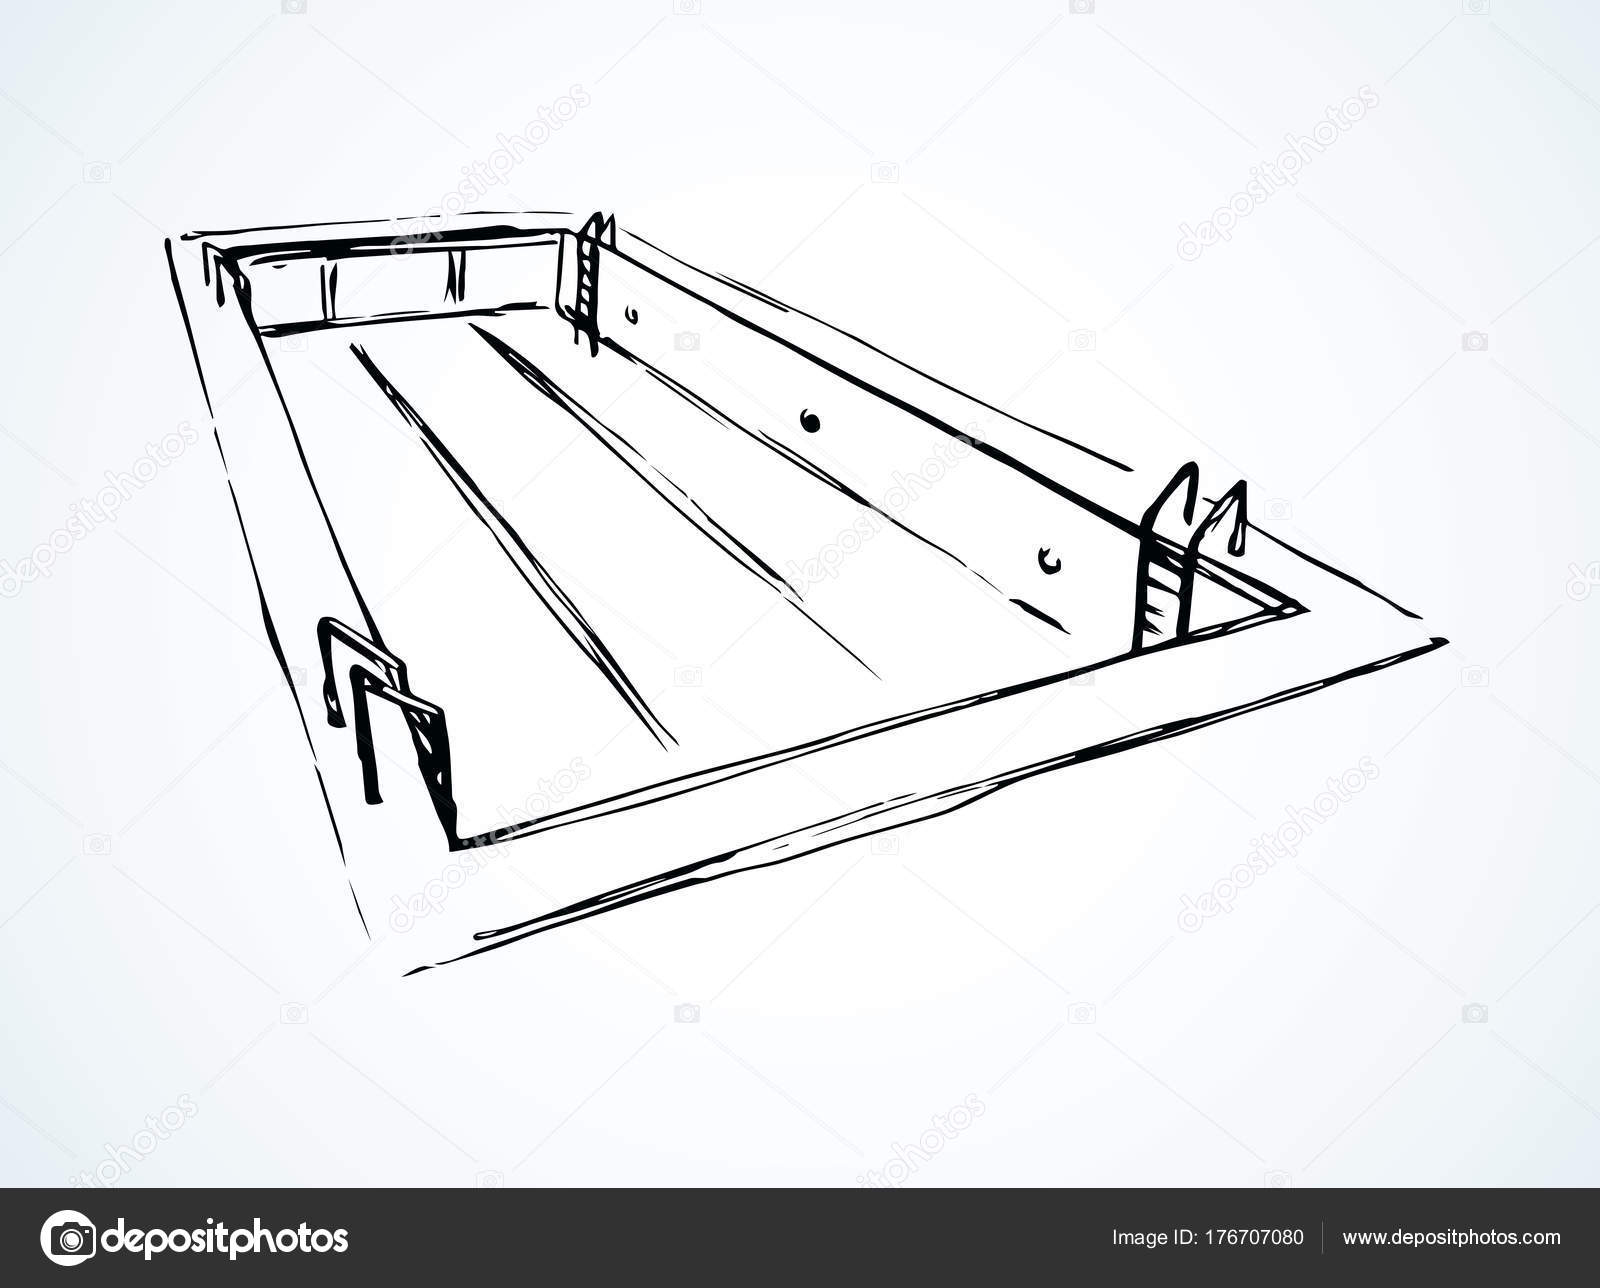 96+ Vector Illustration Hand Drawn Sketch Of Swimming Pool